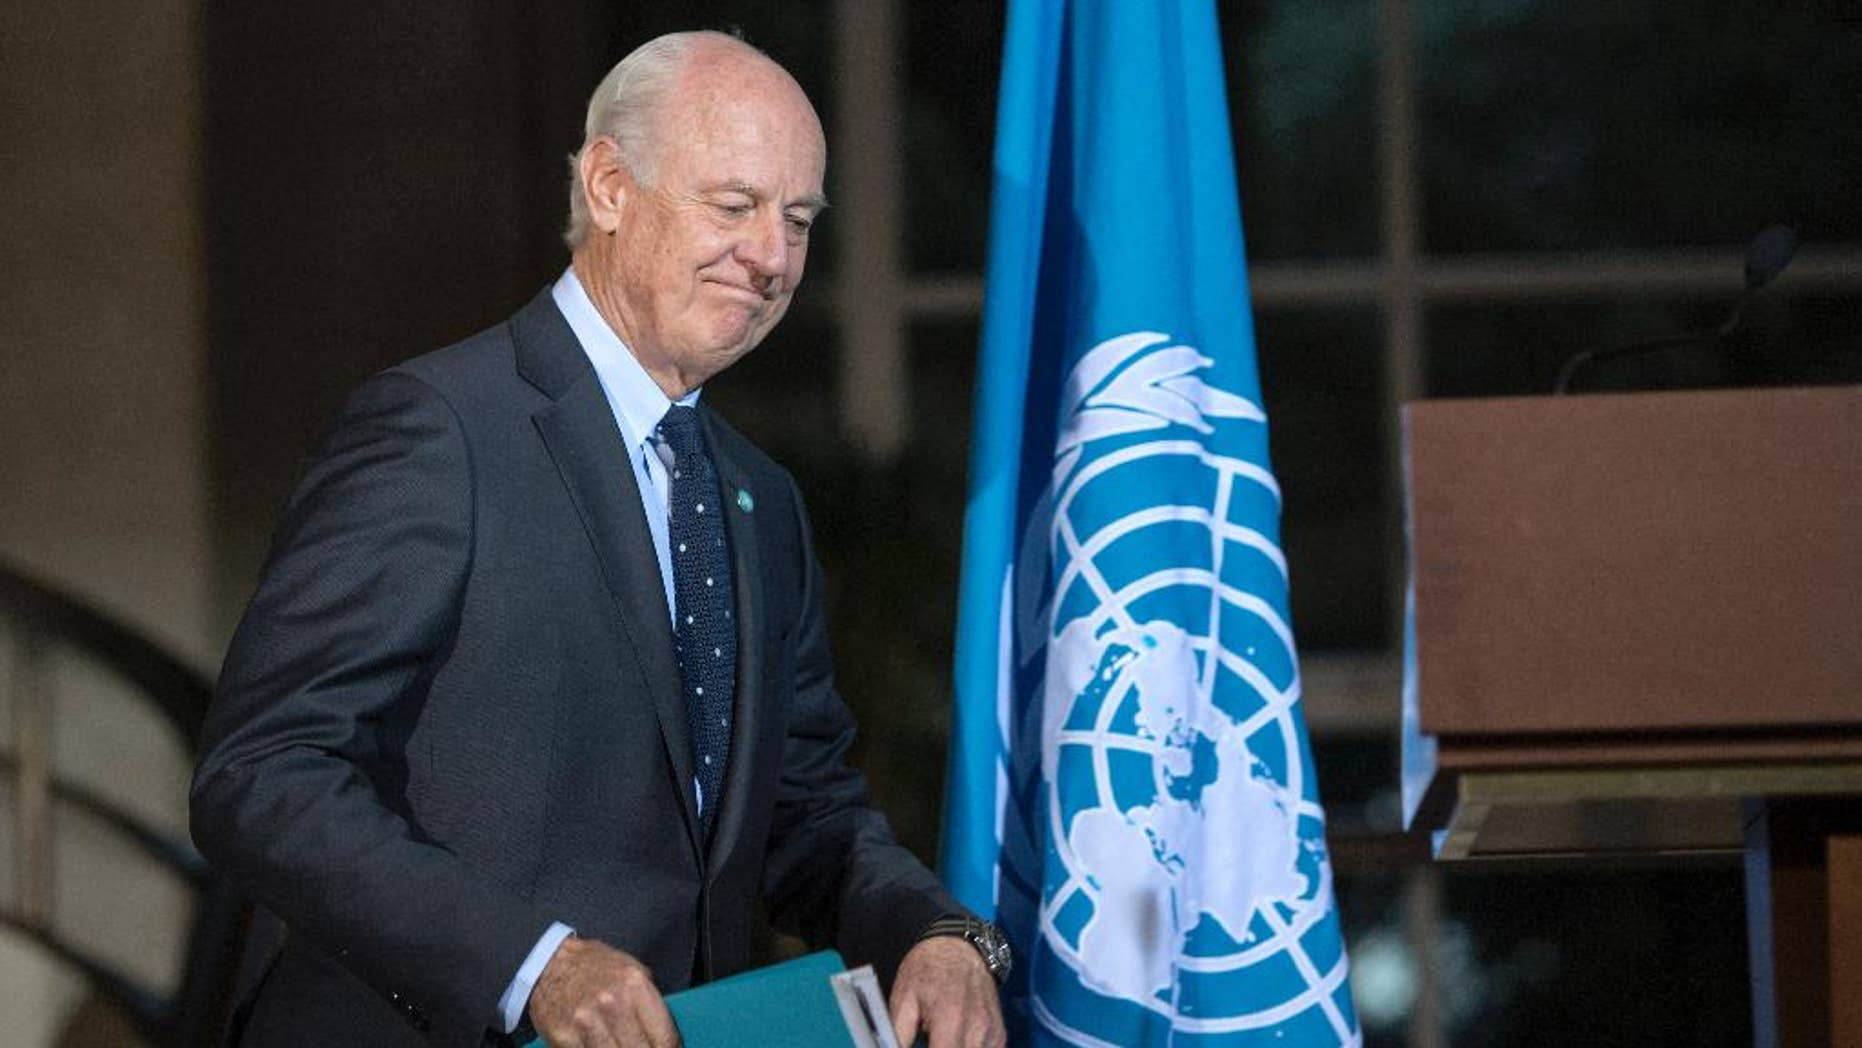 Staffan de Mistura, UN Special Envoy of the Secretary-General for Syria, arrives to a media conference after a new round of negotiations between the Syrian opposition delegation of High Negotiations Committee (HNC), at the European headquarters of the United Nations in Geneva, Switzerland, Wednesday, April 13, 2016. (Martial Trezzini/Keystone via AP)